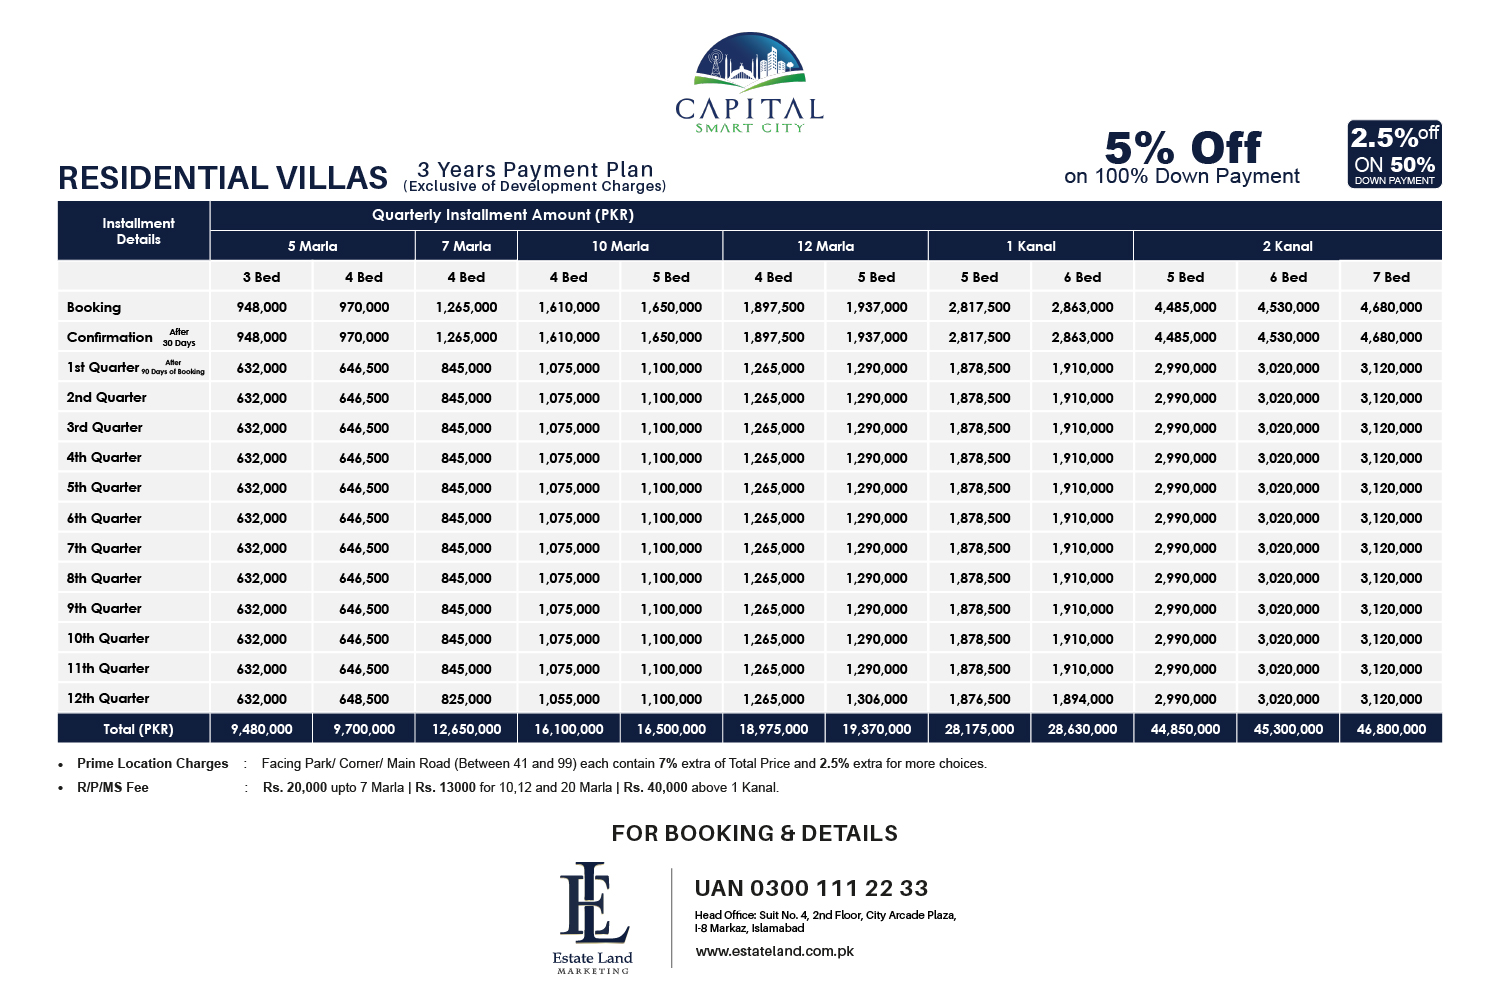 residential villas payment plan of capital smart city